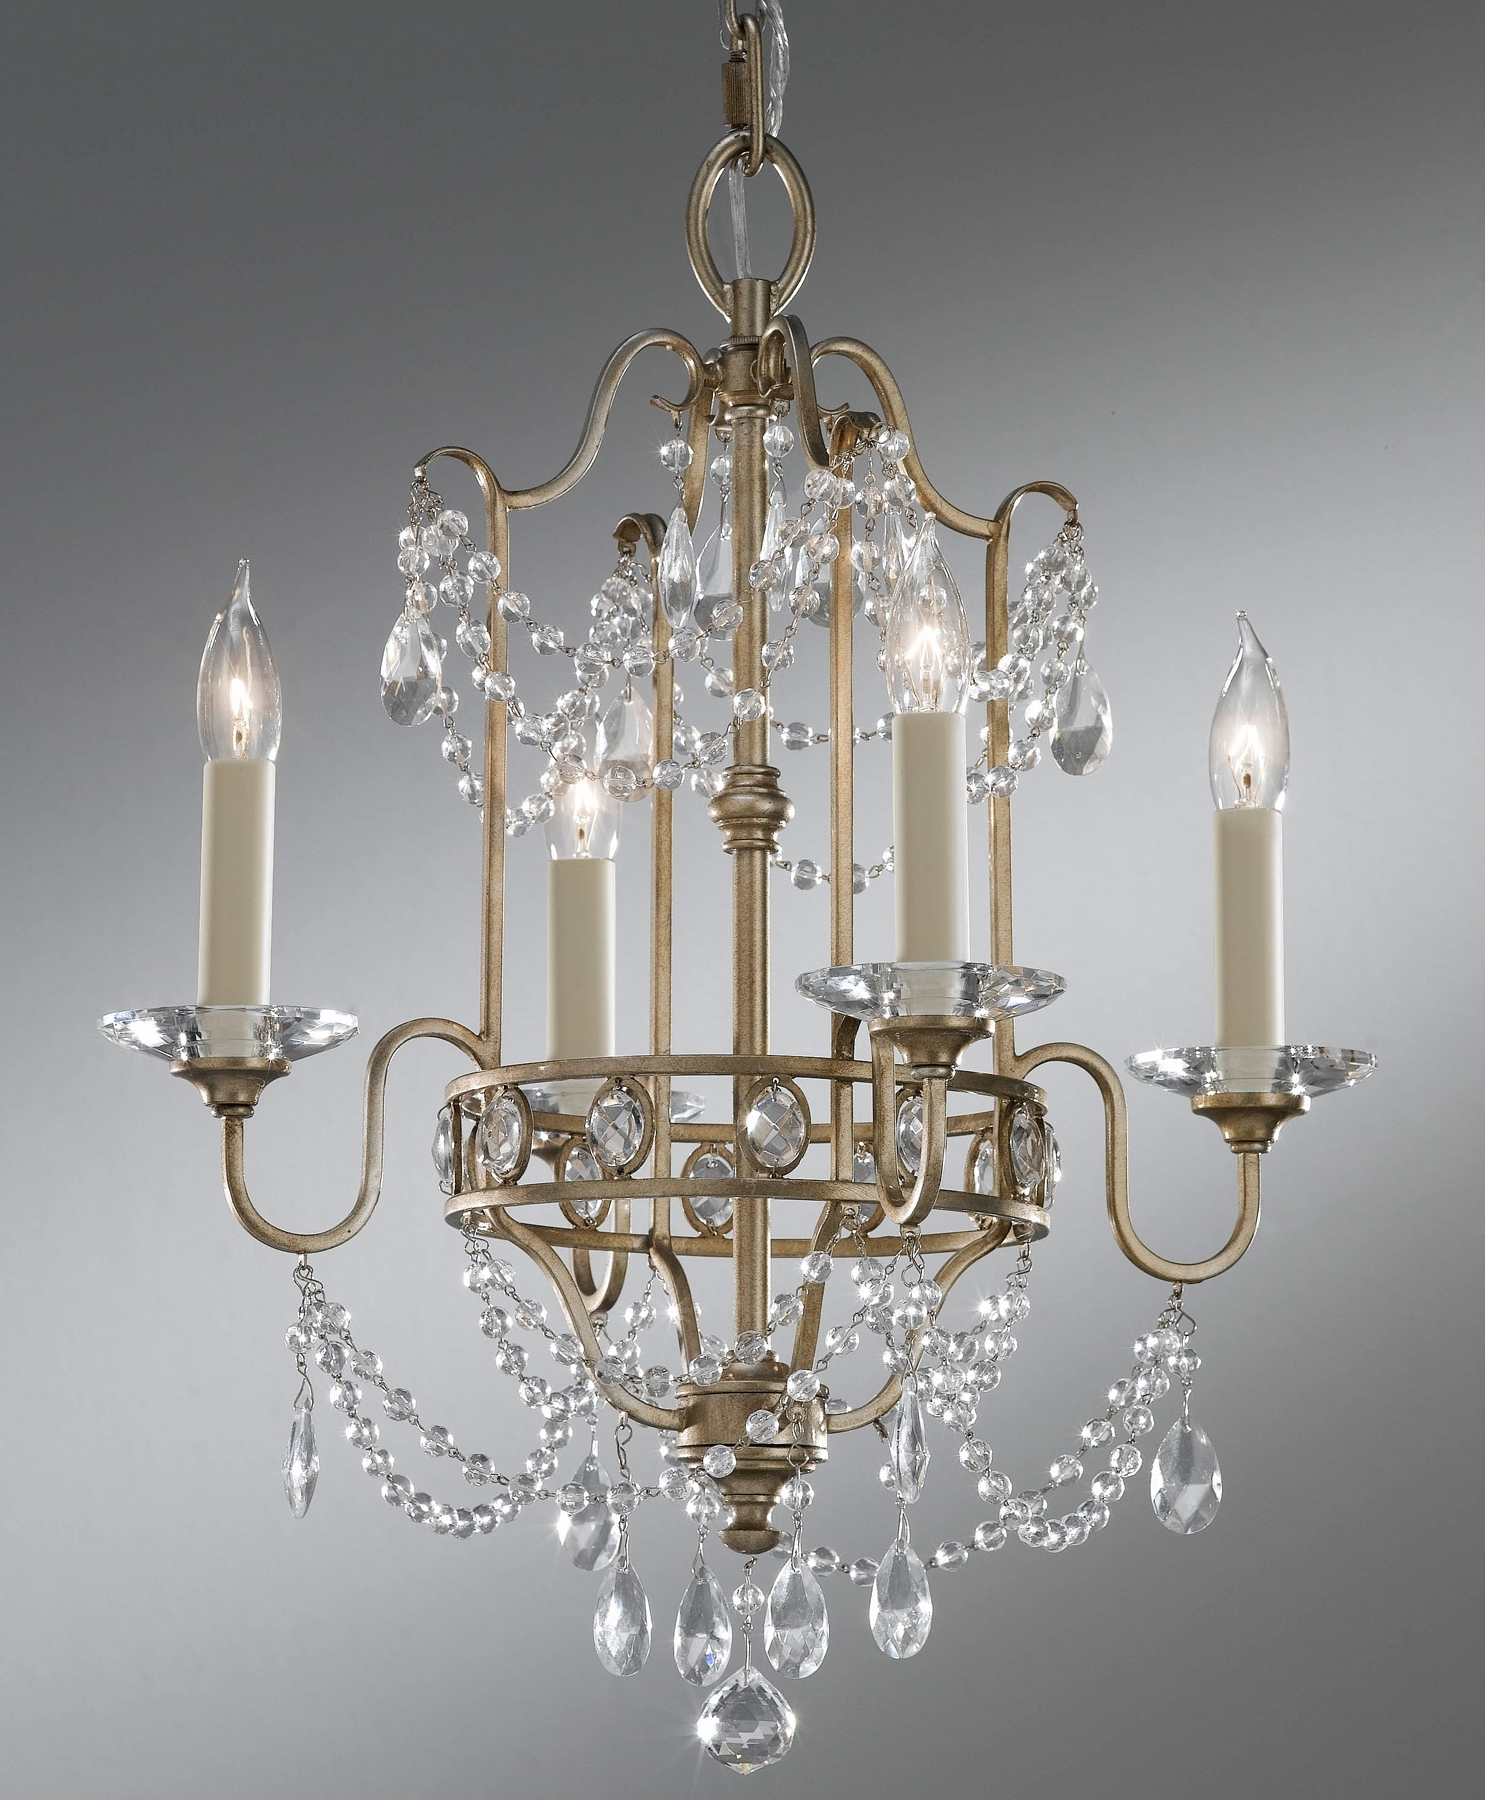 Feiss F2476/4Gs Crystal Gianna Four Light Mini Chandelier Within Most Recently Released Gianna Mini Chandeliers (View 5 of 15)